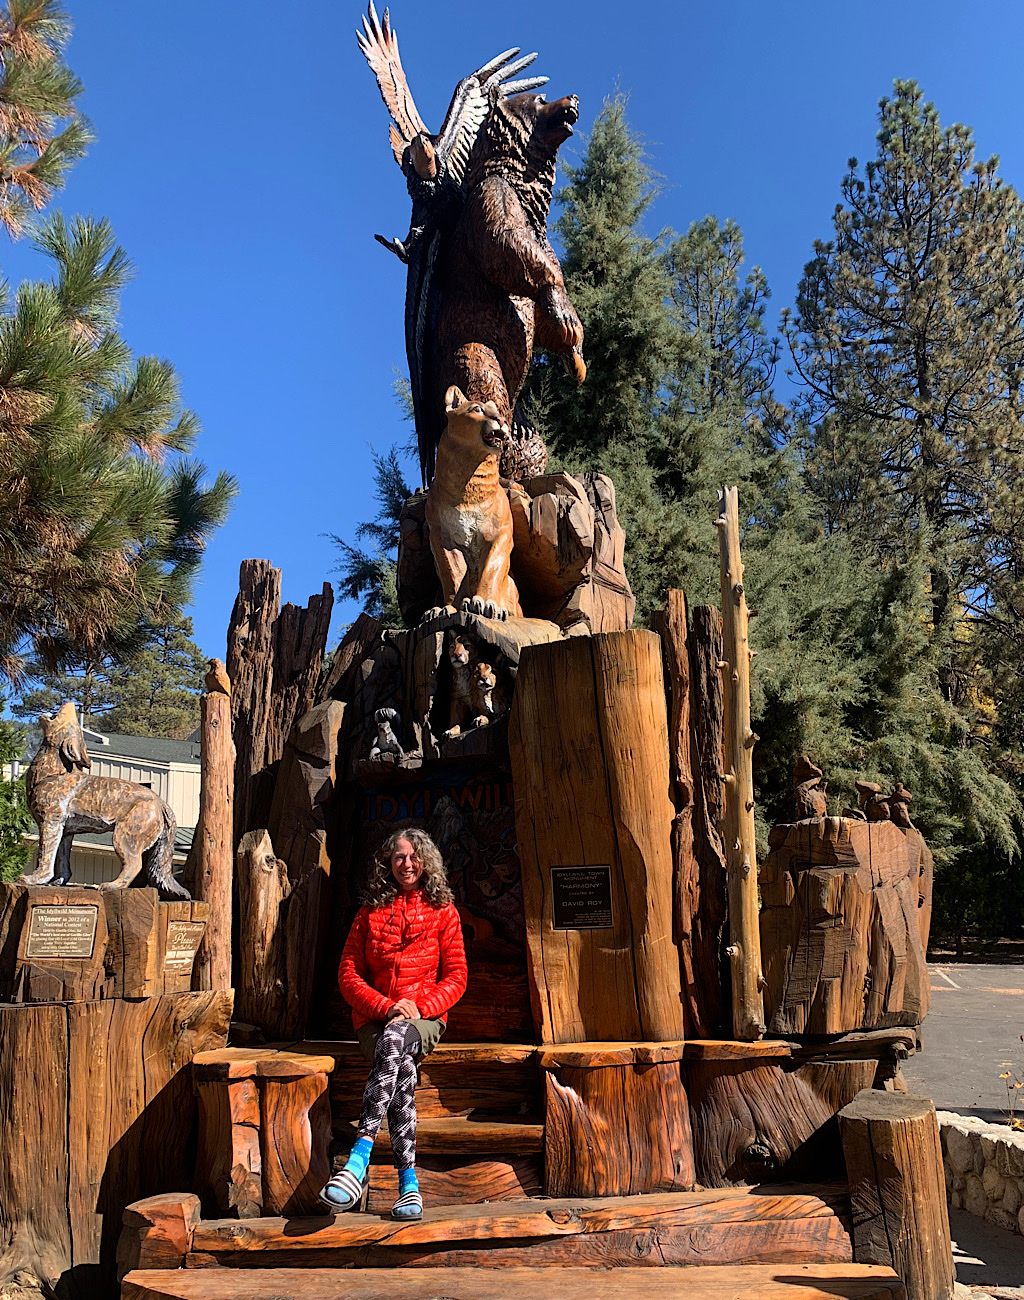 The Blissful Hiker in borrowed clothes underneath the chainsaw sculpture in Idyllwild.